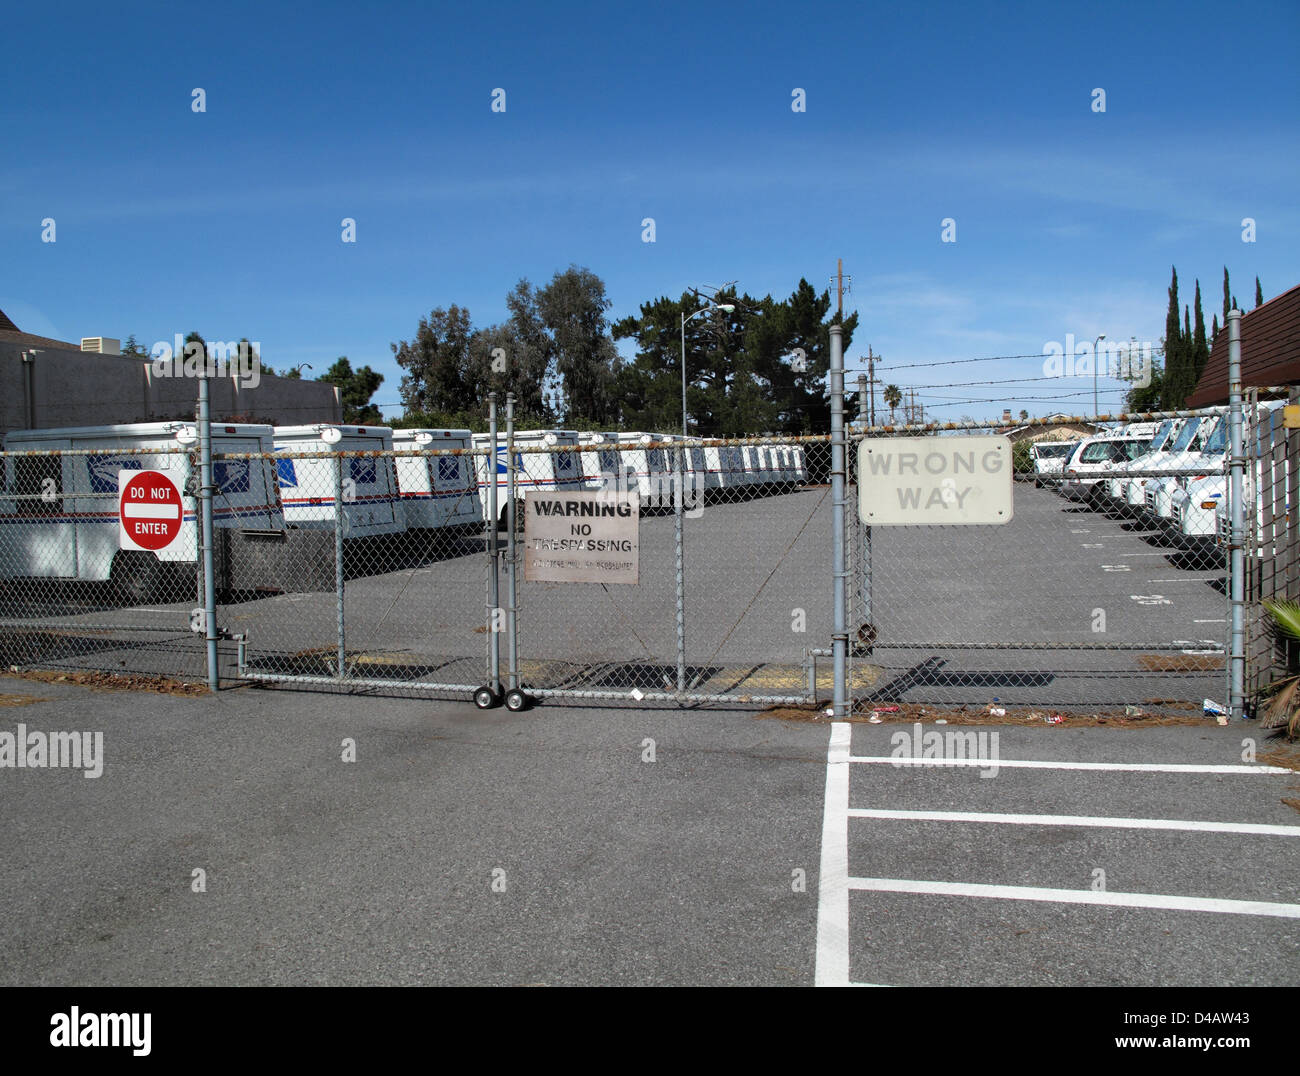 US Postal Service postal vehicles parked behind lock gate. Cambrian Post Office, San Jose California - Stock Image